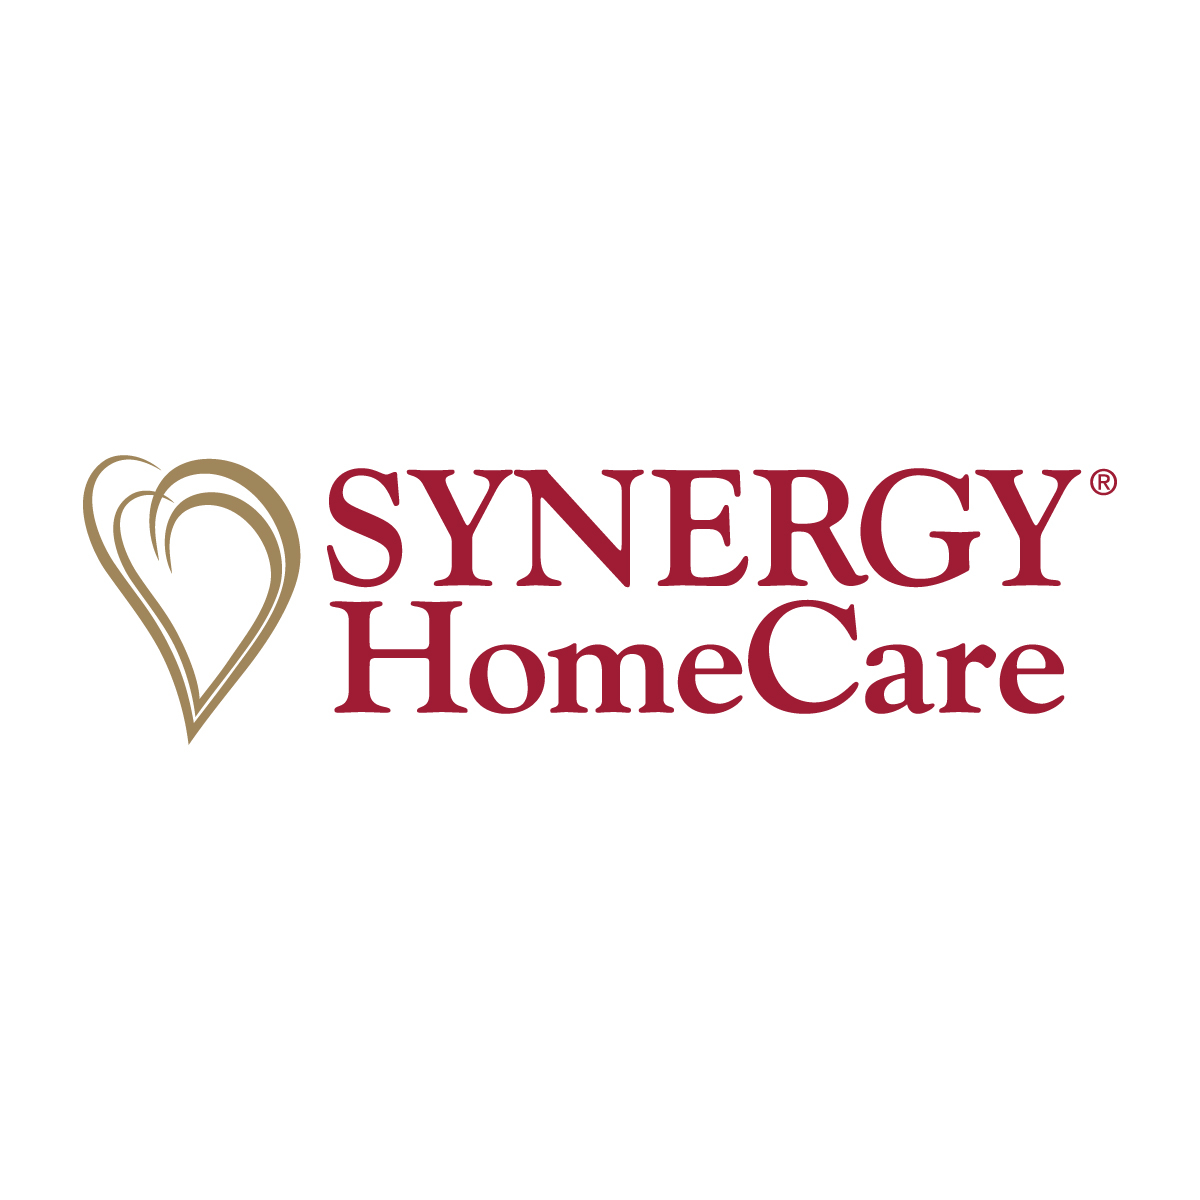 SYNERGY HomeCare Franchising LLC